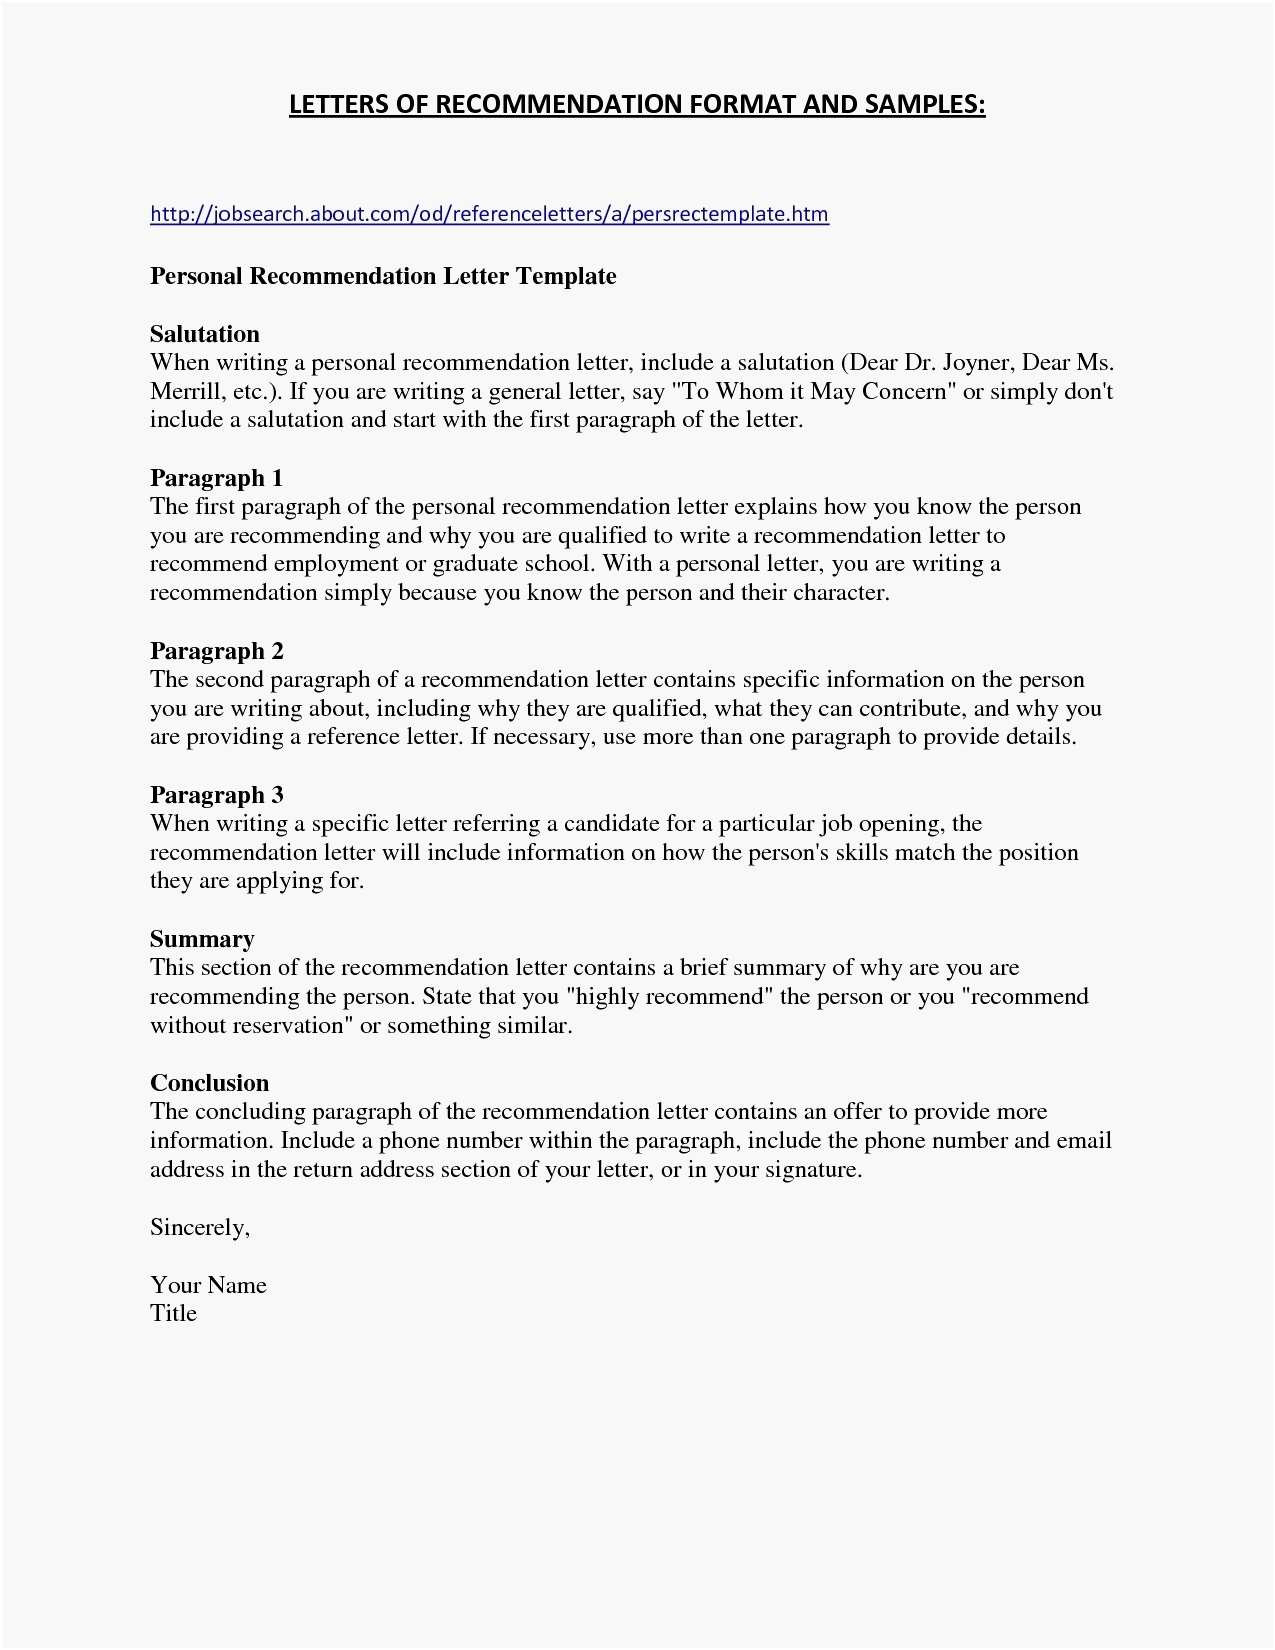 hoa dues letter template Collection-Letter to Hoa Template Resume Cover Page Template Free Unique Resume Cover Letter Template 4-k